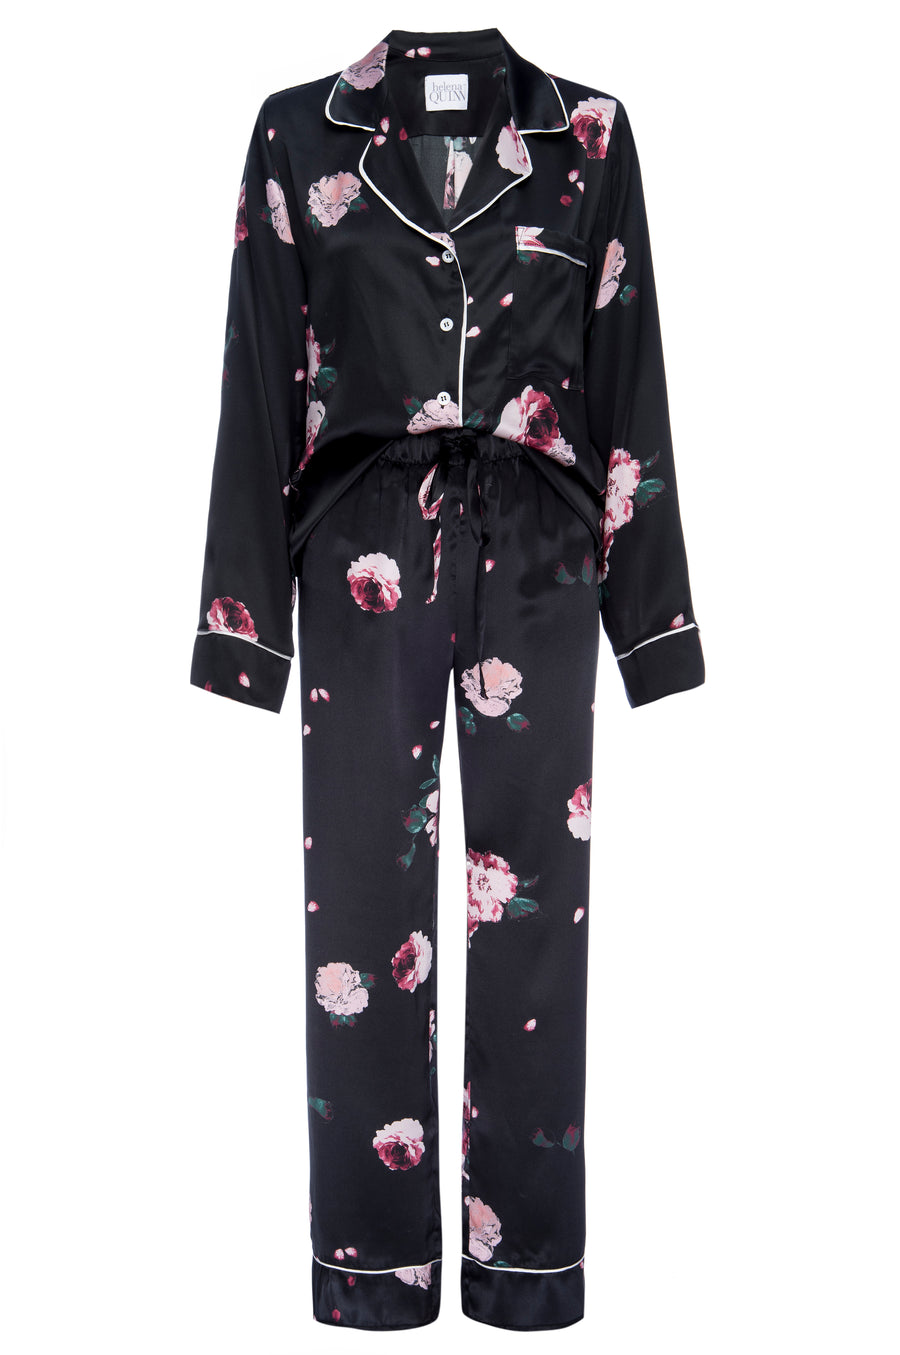 Silk Charmeuse Long Sleeved PJ Top + Pant Set: Black Rose Print